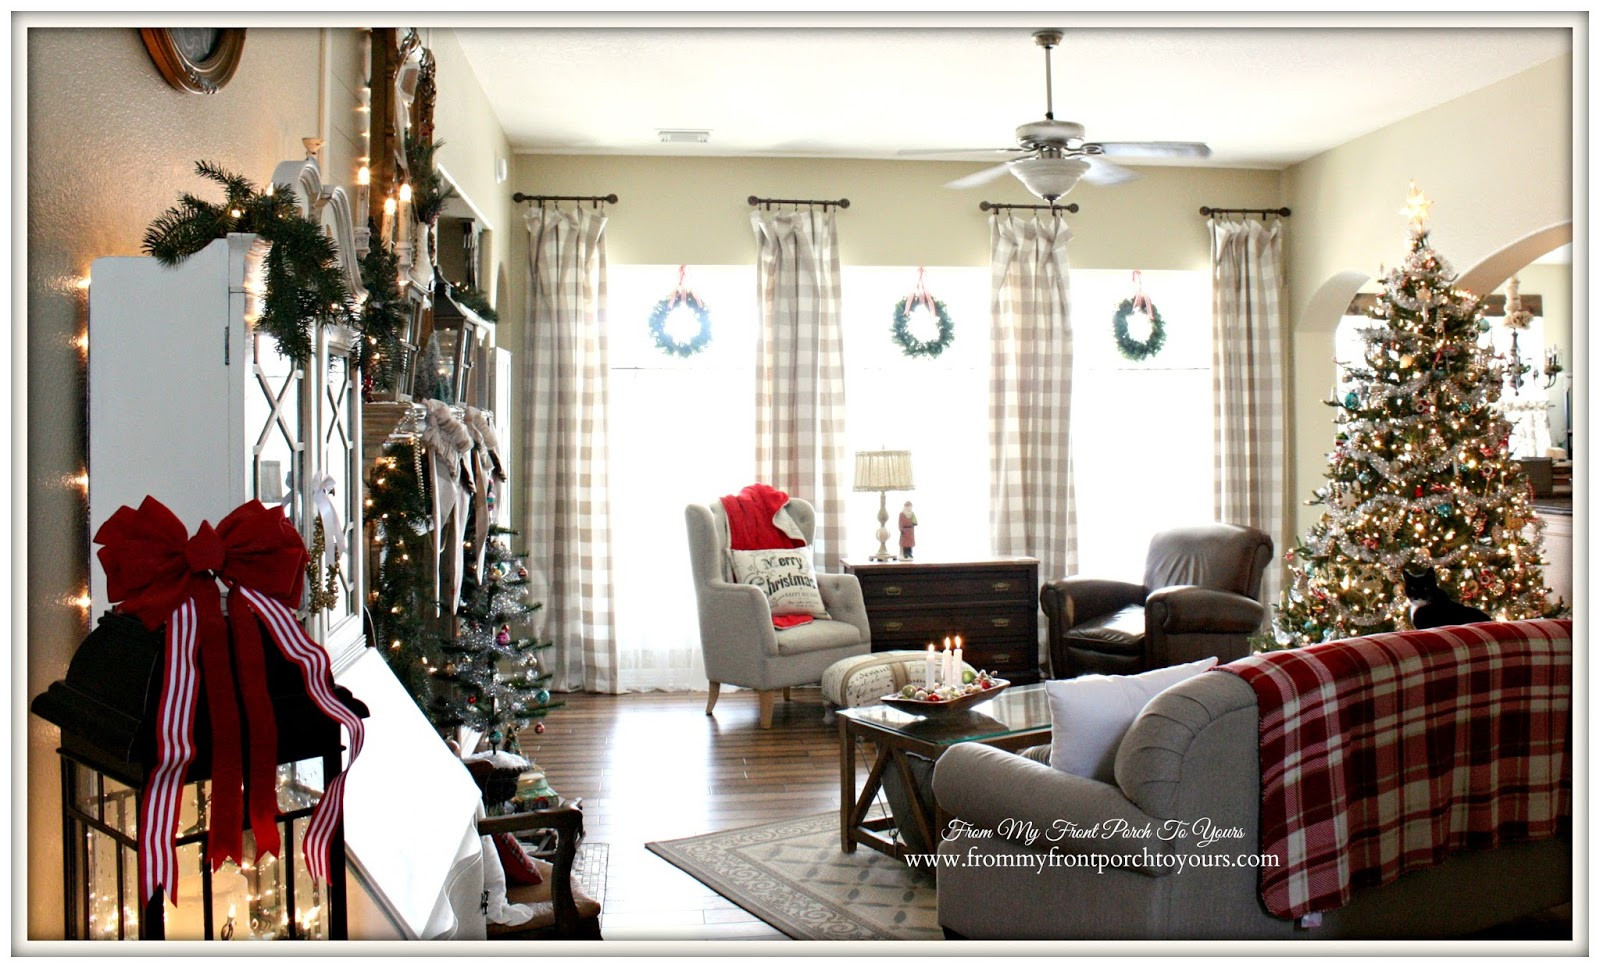 Living Room Christmas  From My Front Porch To Yours Farmhouse Vintage Christmas